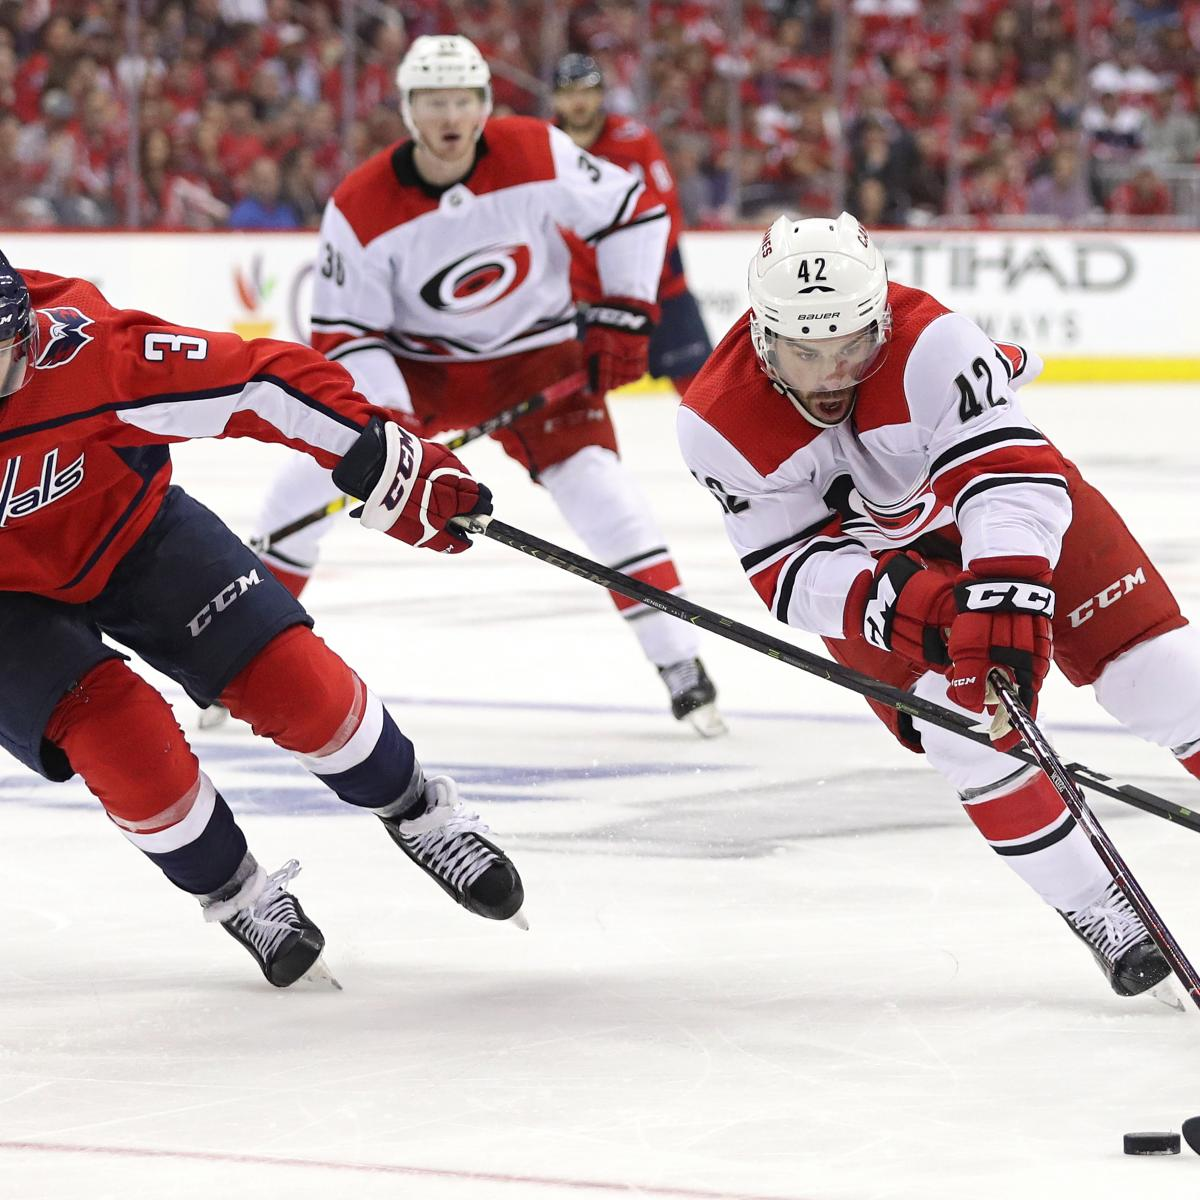 NHL Playoffs 2019: Updated TV Schedule, Odds, Standings